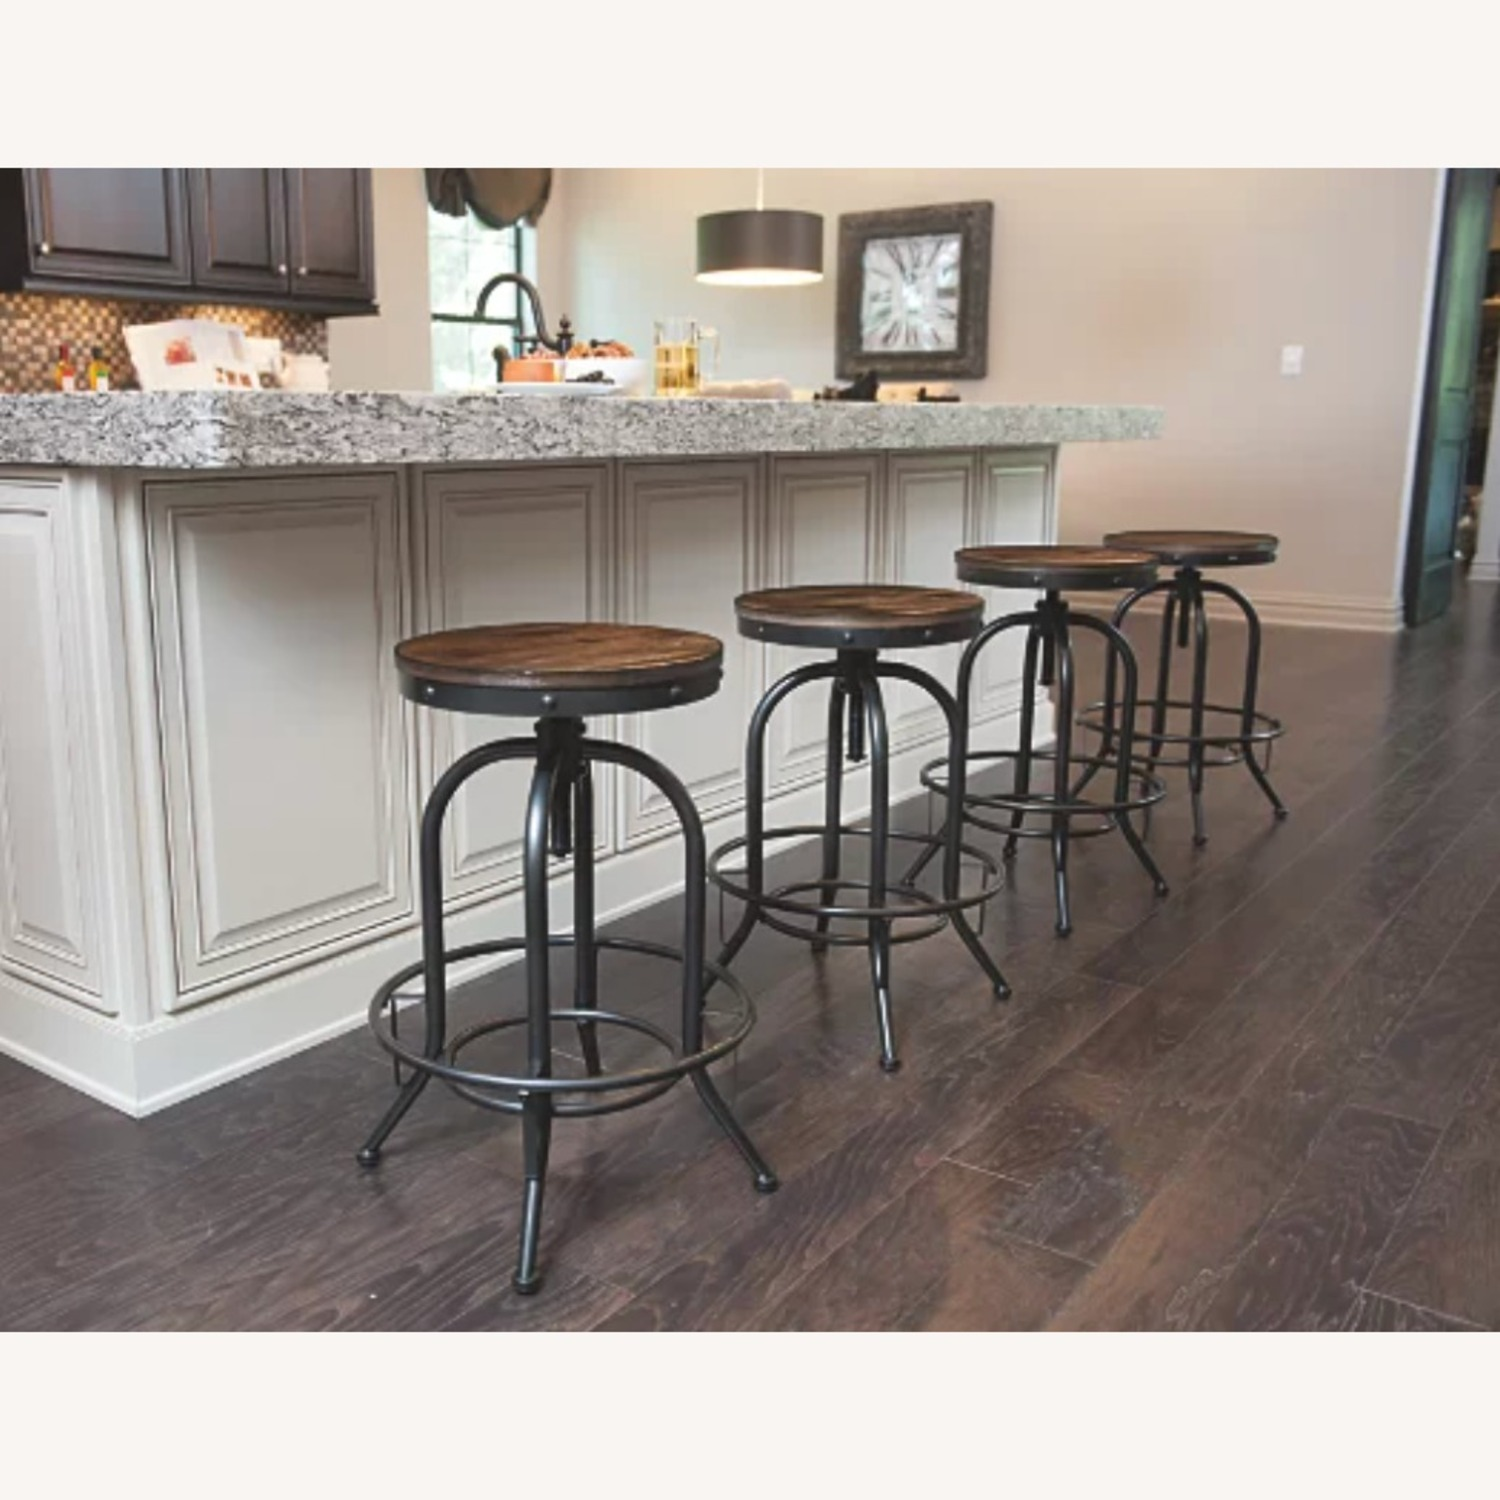 Ashley Furniture Dining Room Bar Table and Bar Stools (4) - image-4